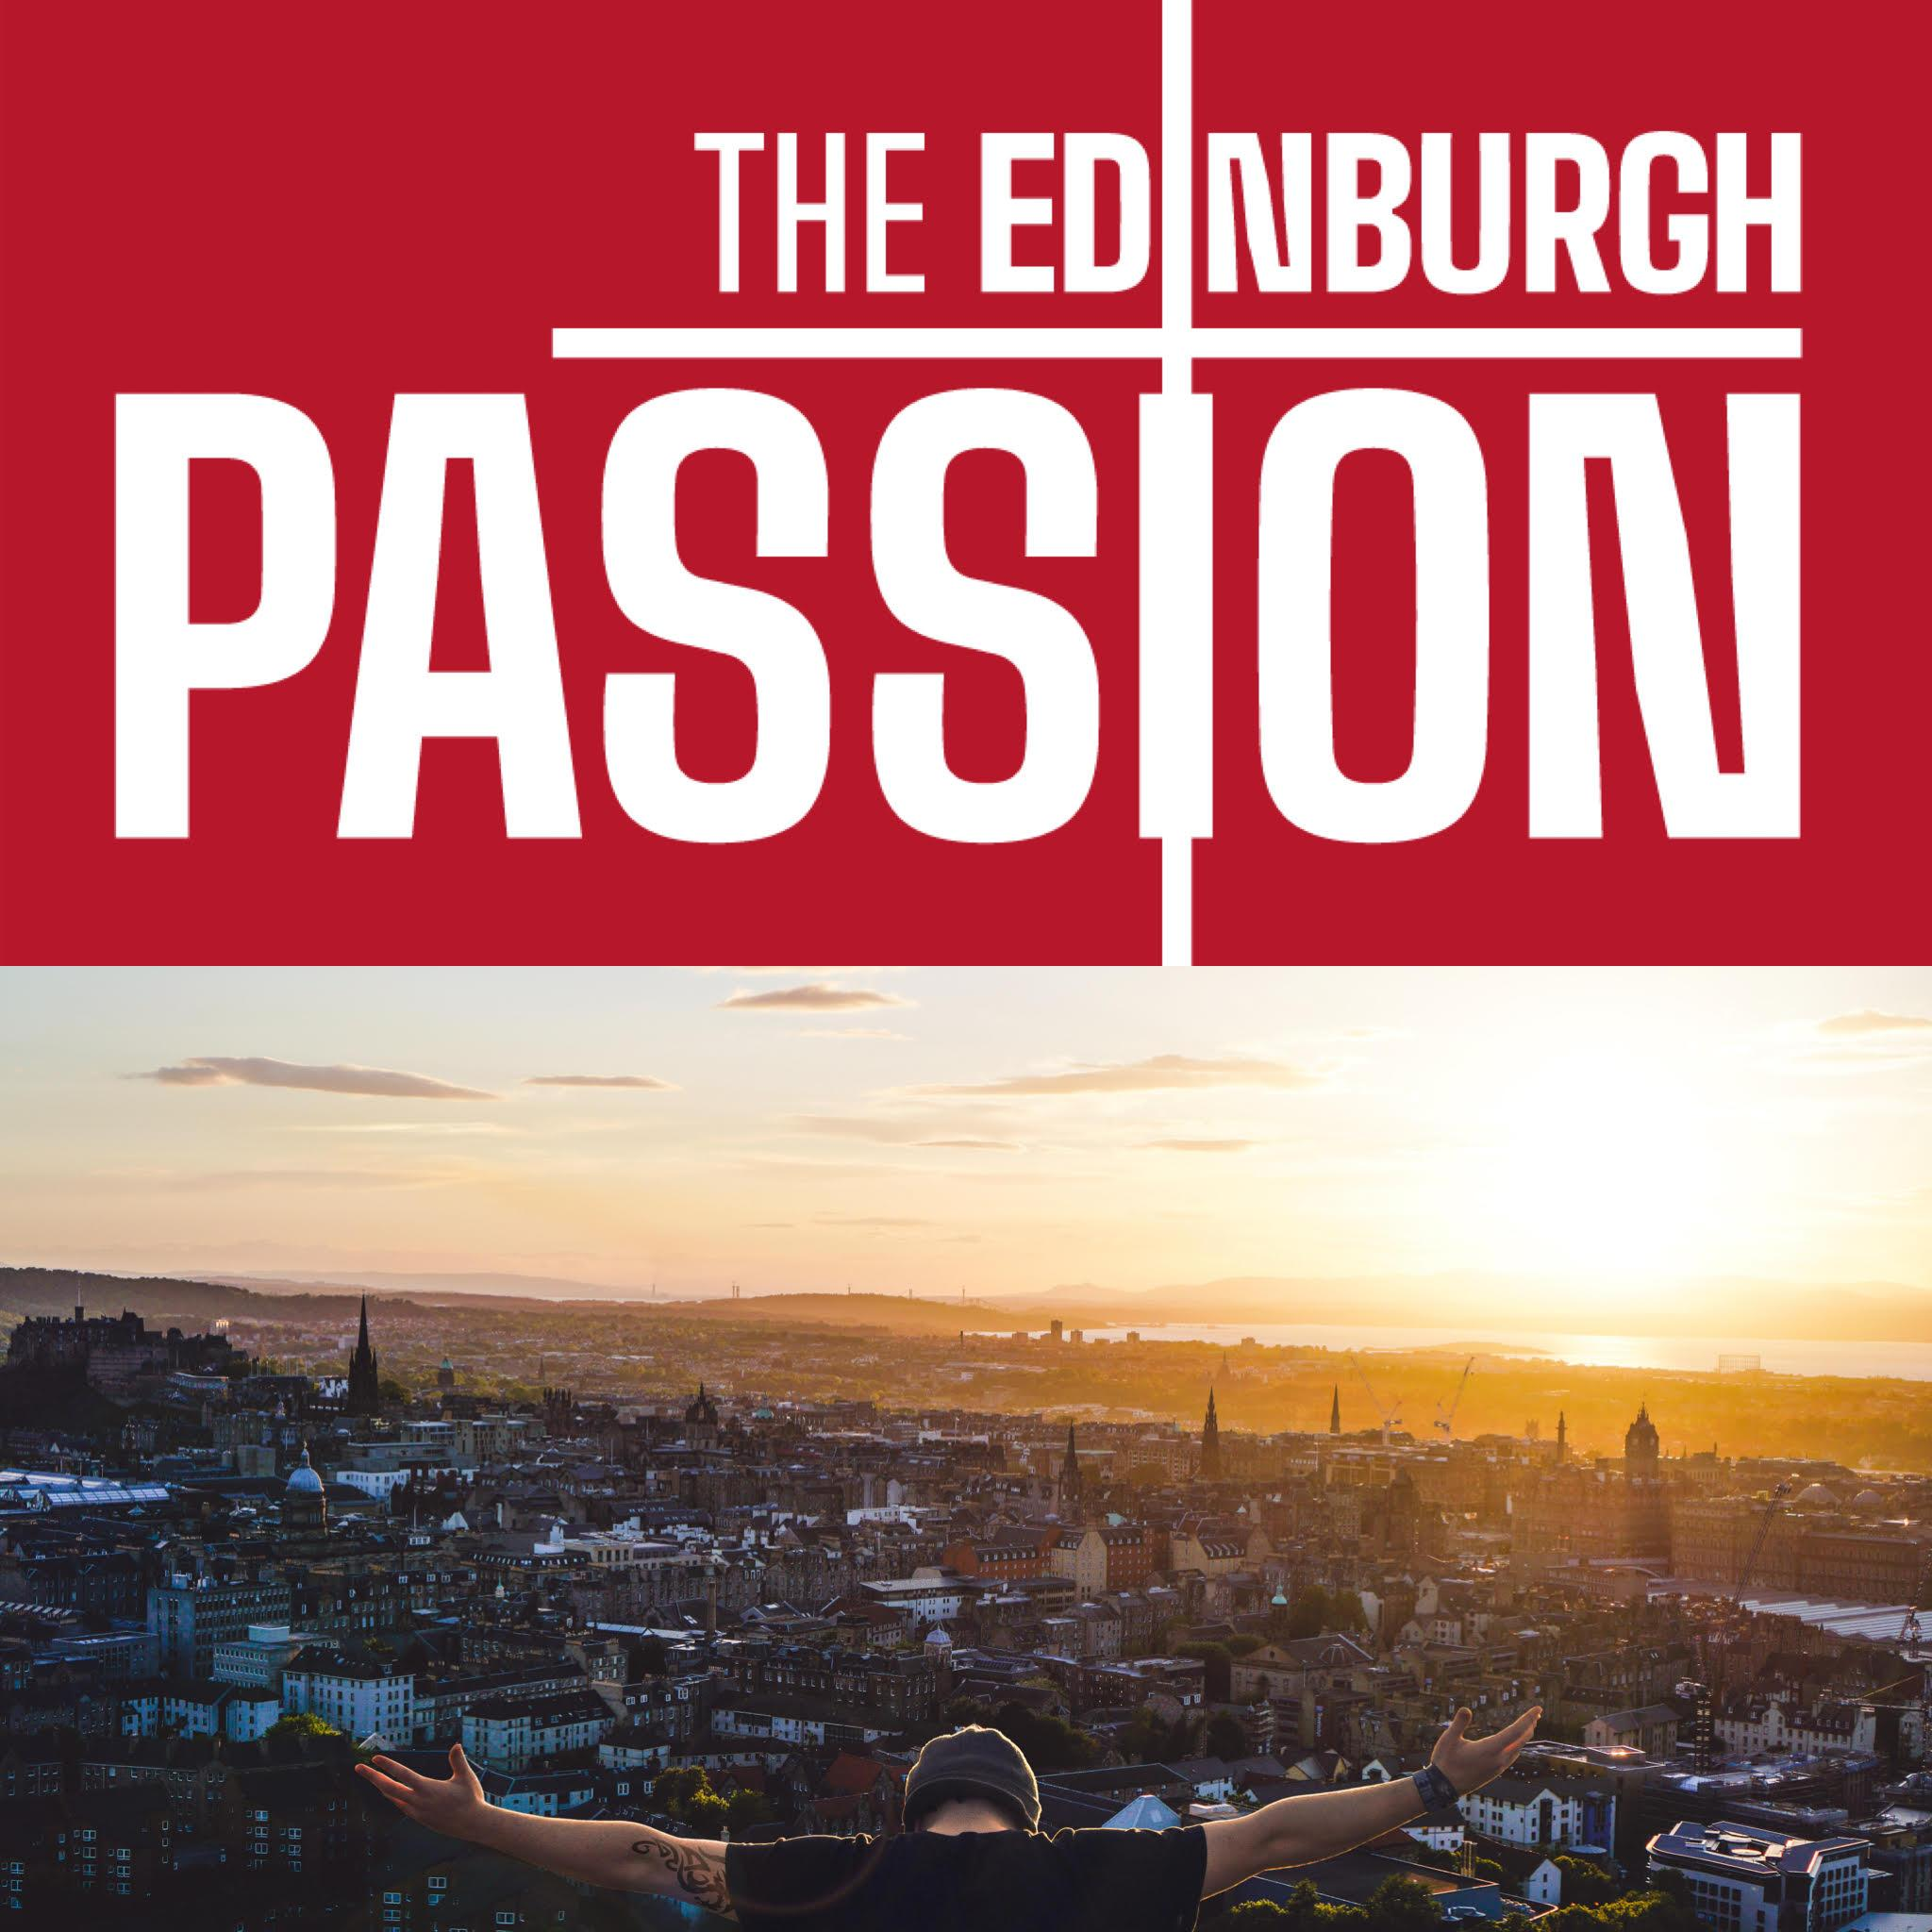 Edinburgh Passion - Stages of Grief by Napier Filmmaking Society